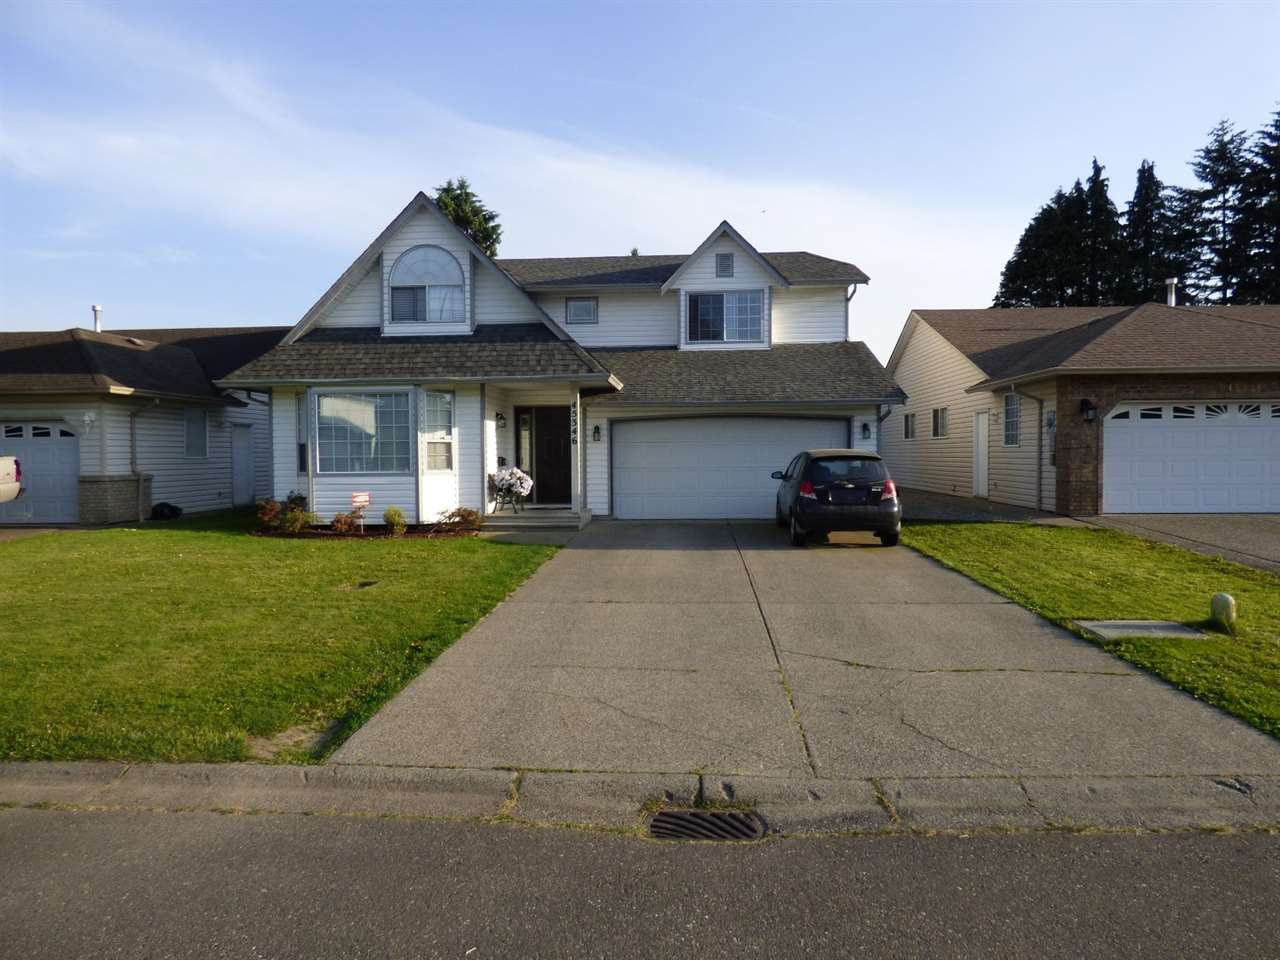 Main Photo: 45346 LABELLE Avenue in Chilliwack: Chilliwack W Young-Well House for sale : MLS® # R2070629